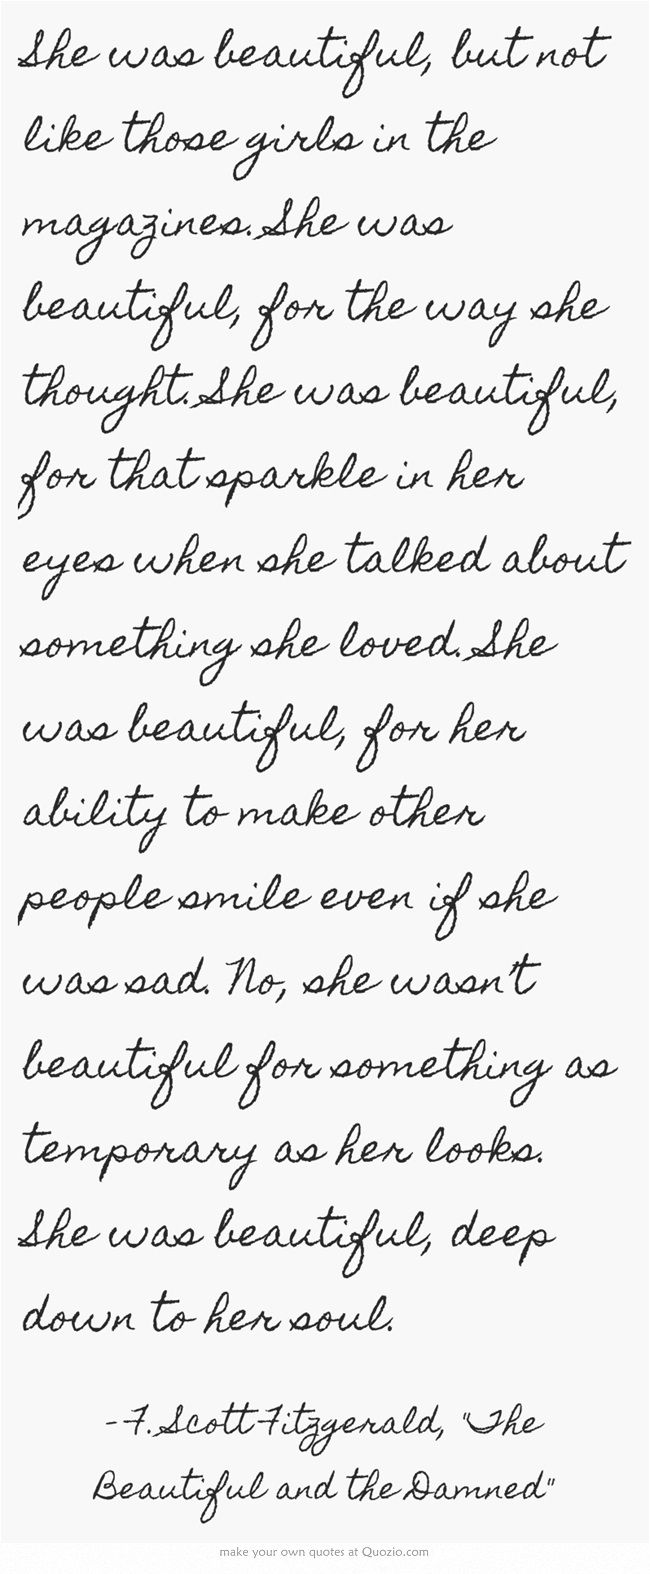 Beauty F Scott Fitzgerald Love Pinterest Spreuken And Teksten